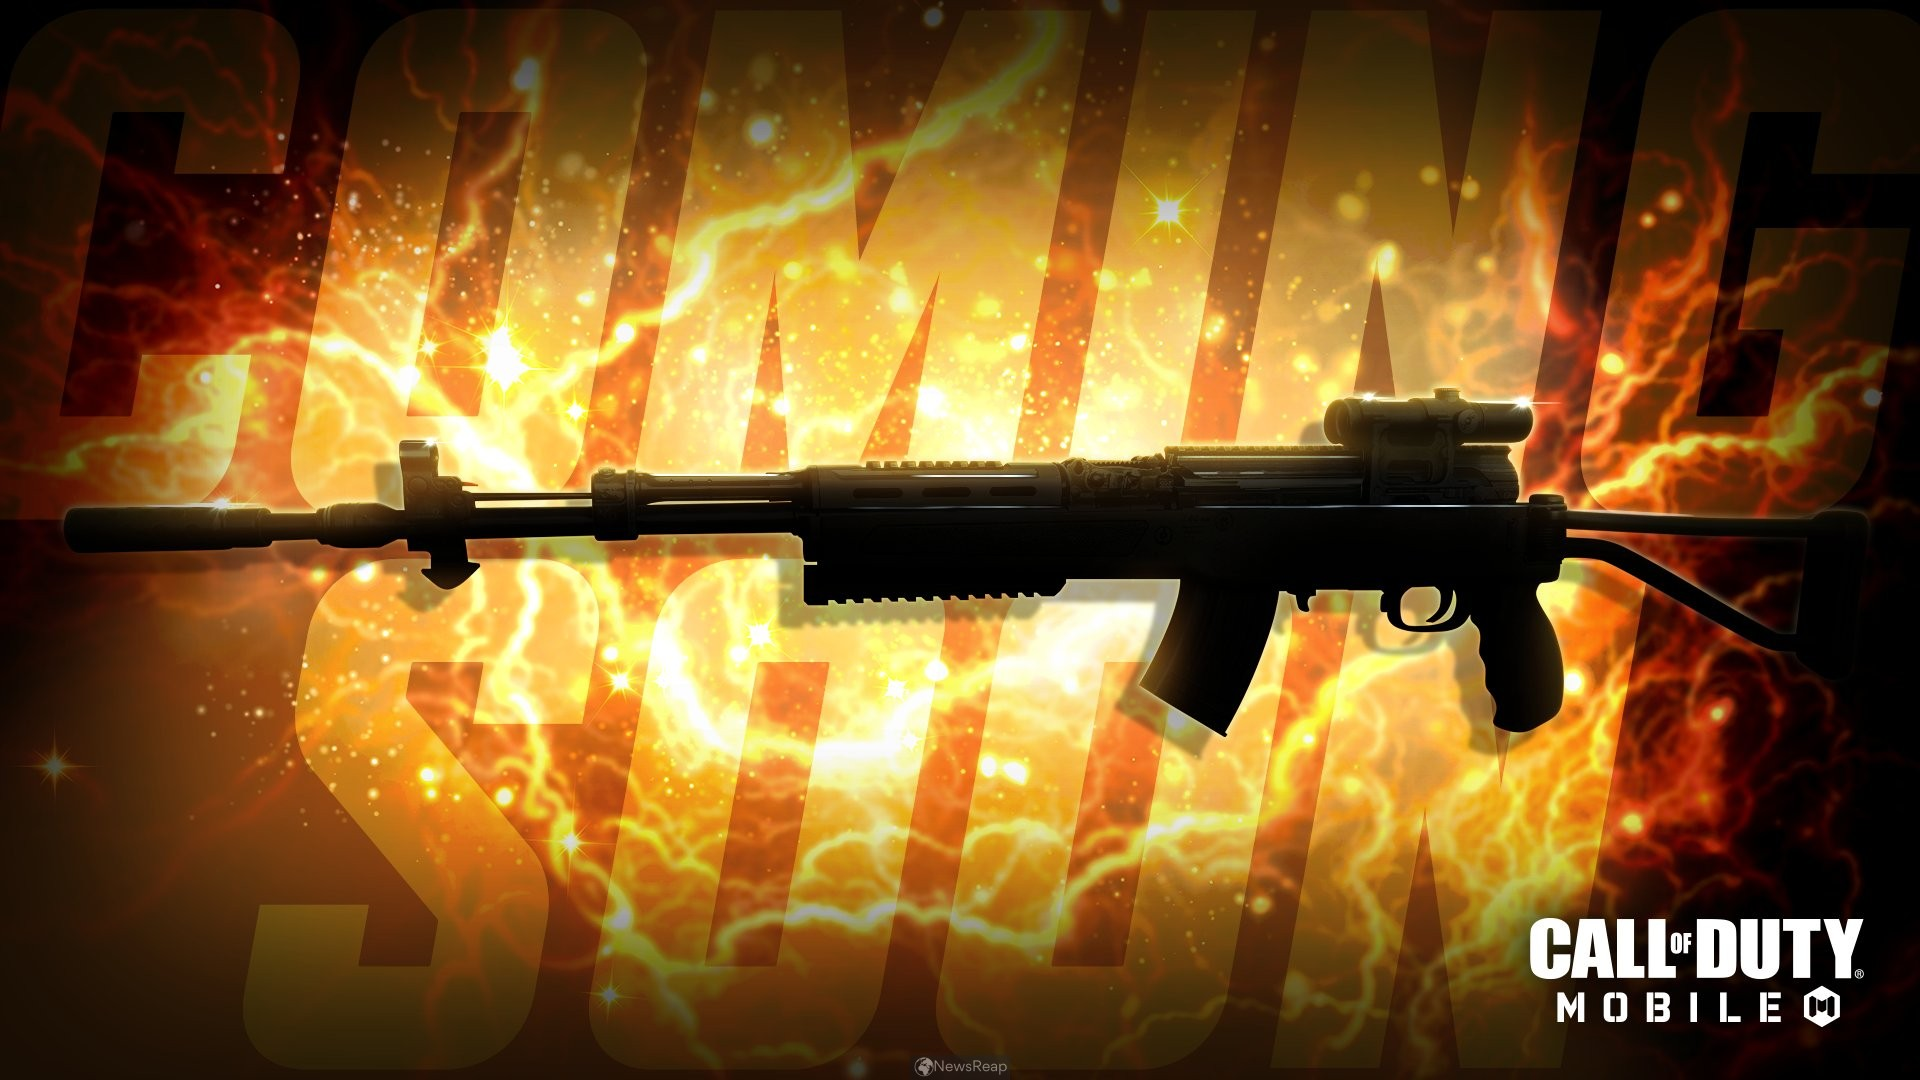 Call of Duty Mobile: Two new Guns set to come in Upcoming season 14